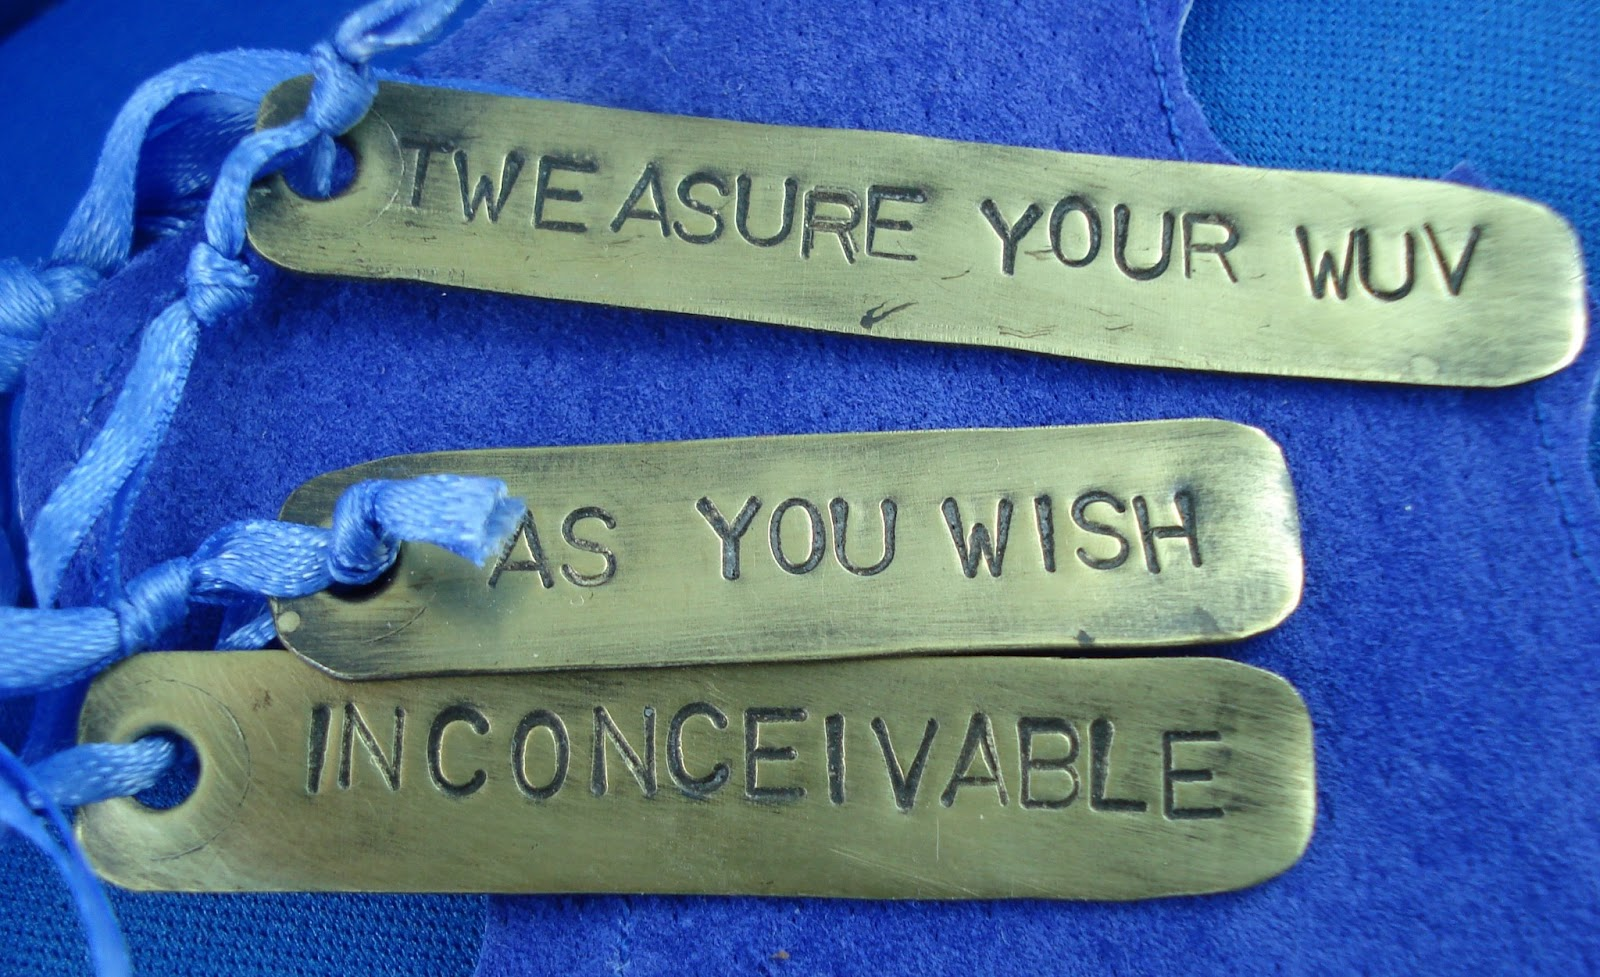 Tweasure Your Love As You Wish Inconceivable